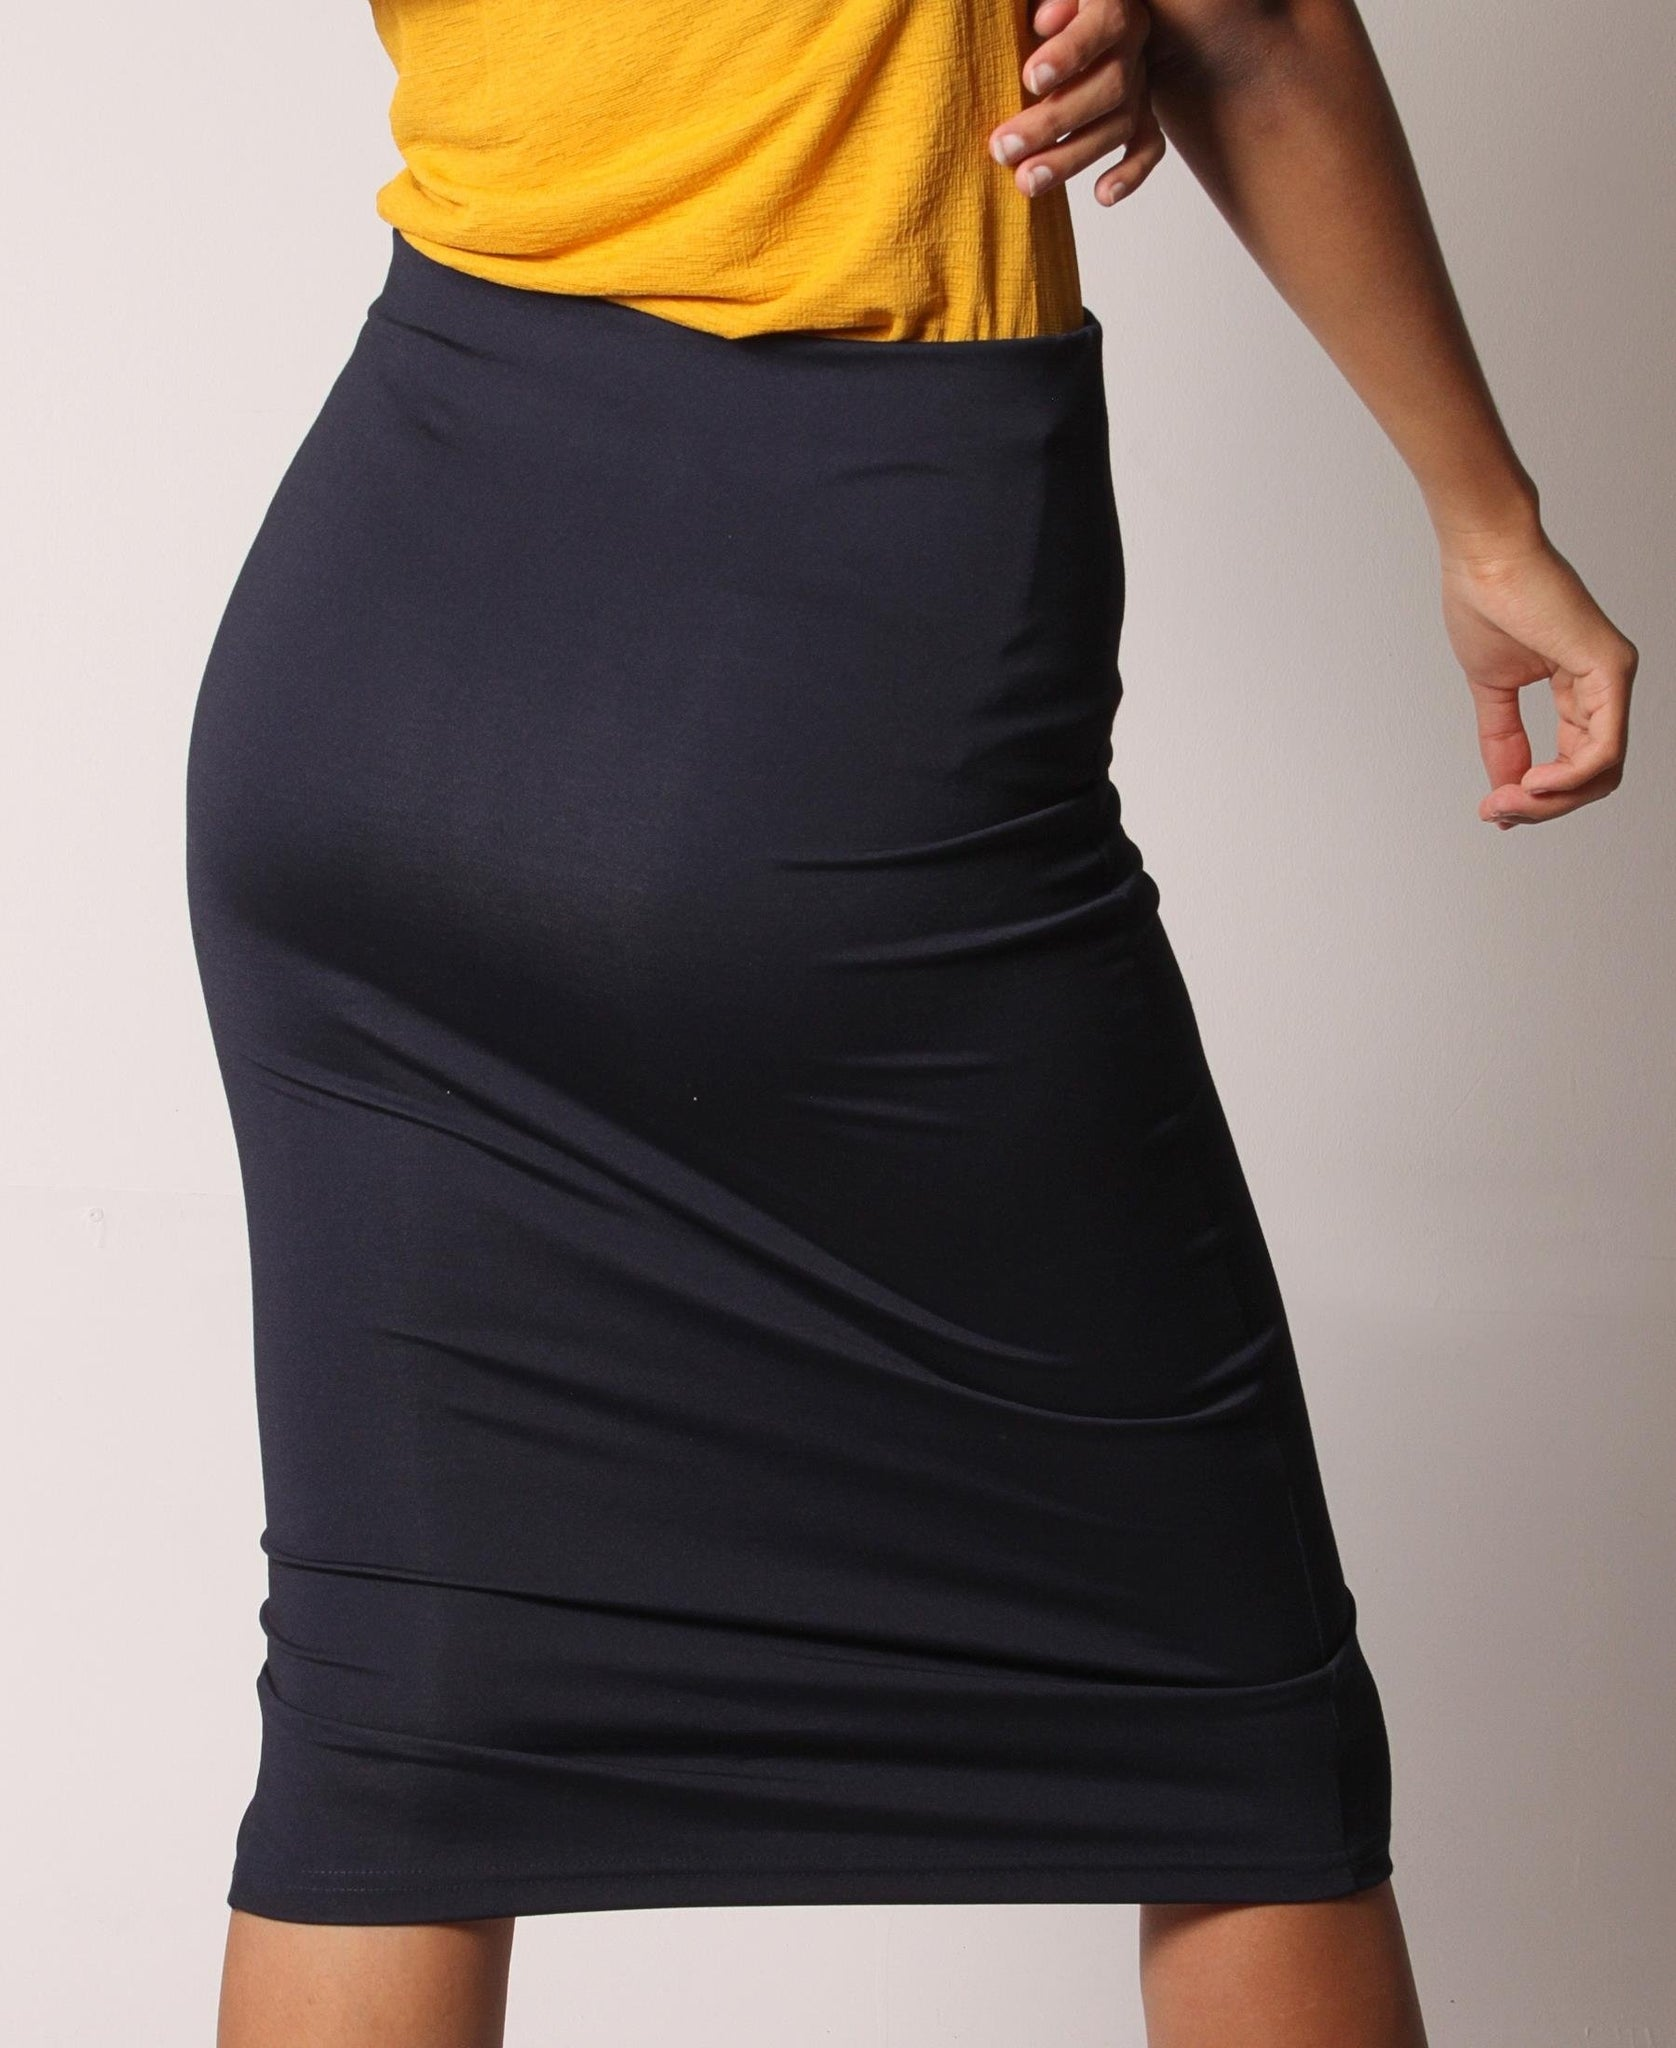 High Waist Side Button Skirt - Navy